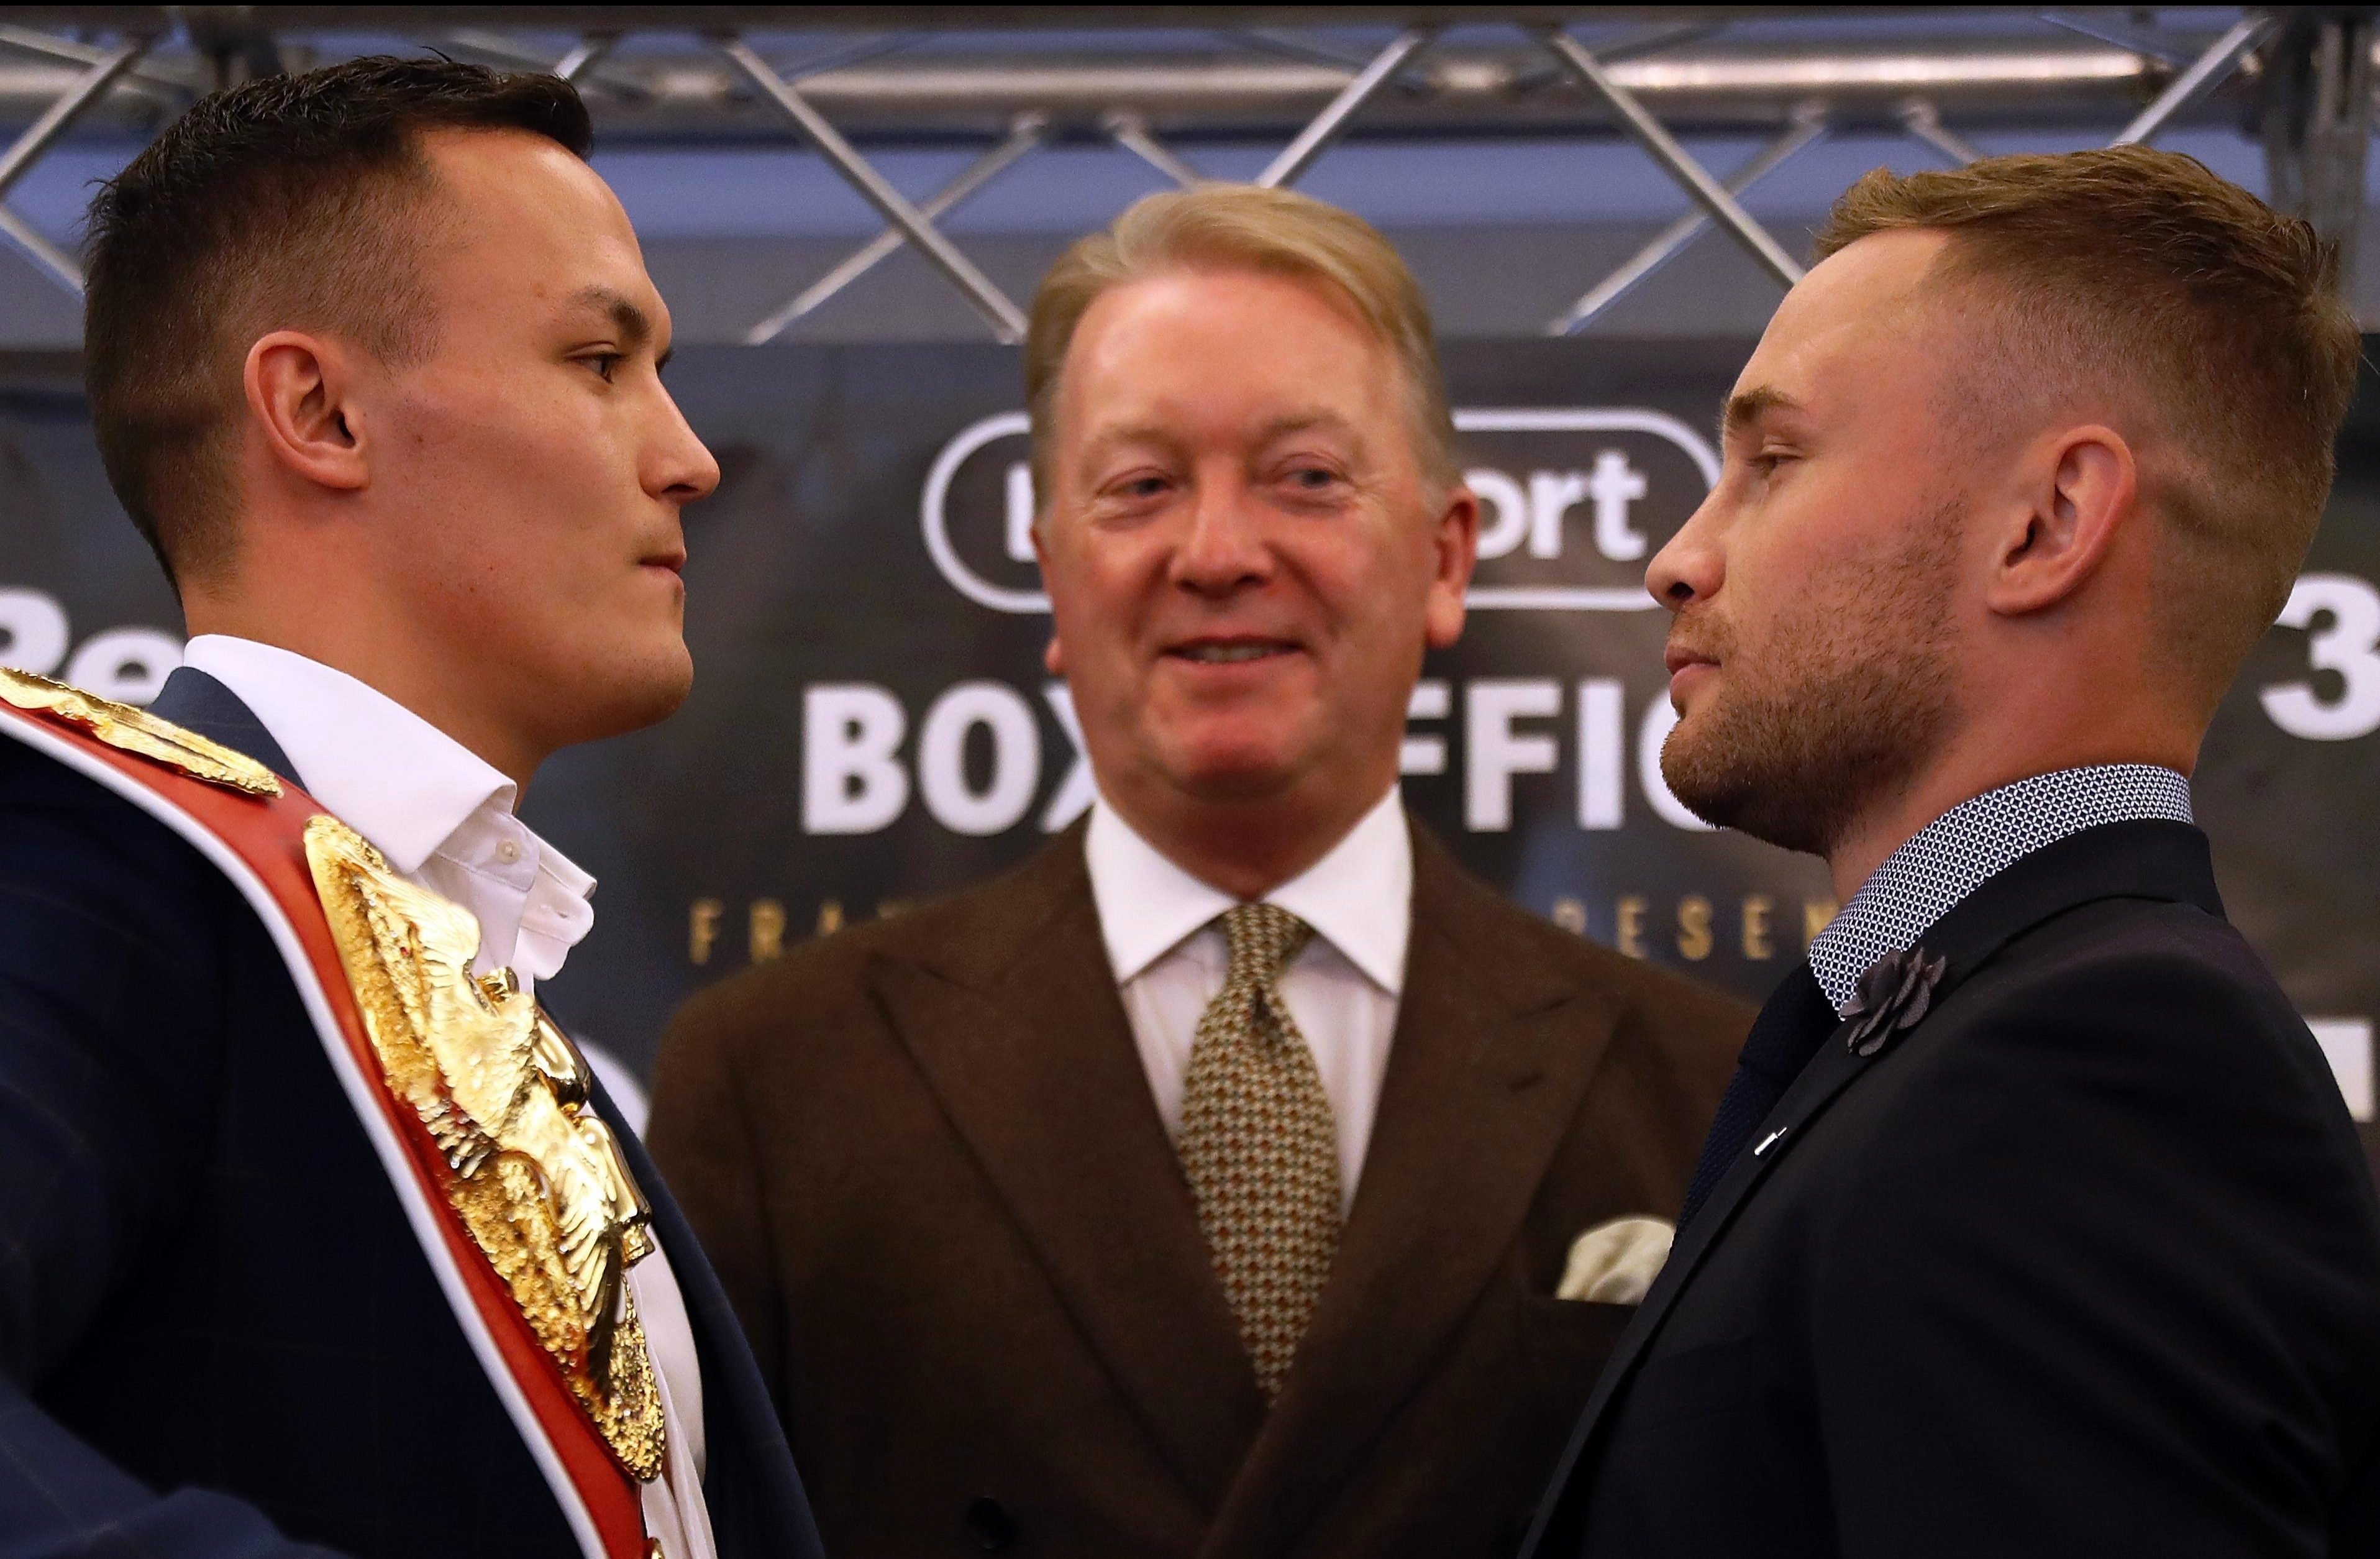 Josh Warrington and Carl Frampton face each other today with promoter Frank Warren